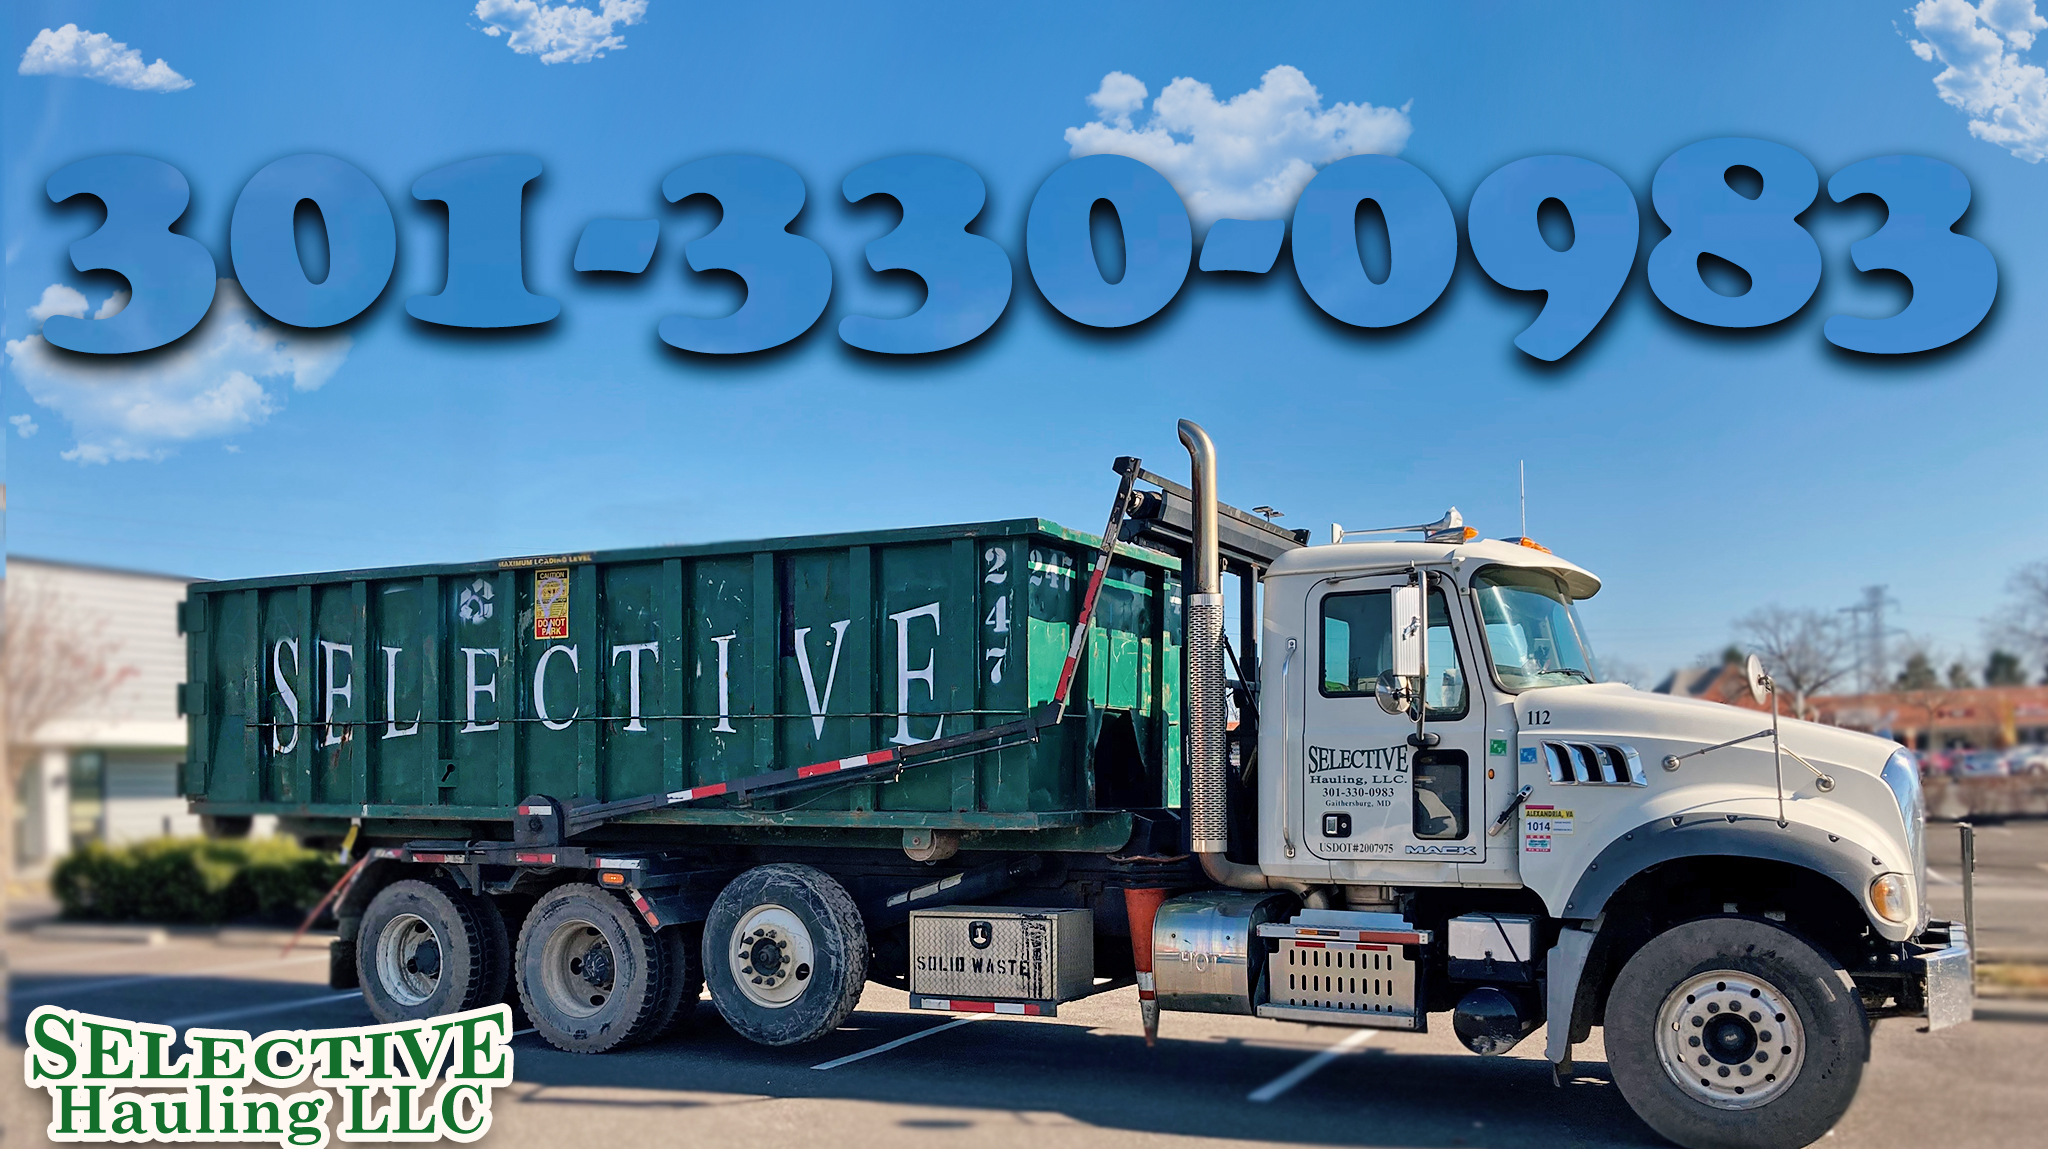 Roll off container rental Dulles Virginia - Dumpster Rental Dulles Virginia